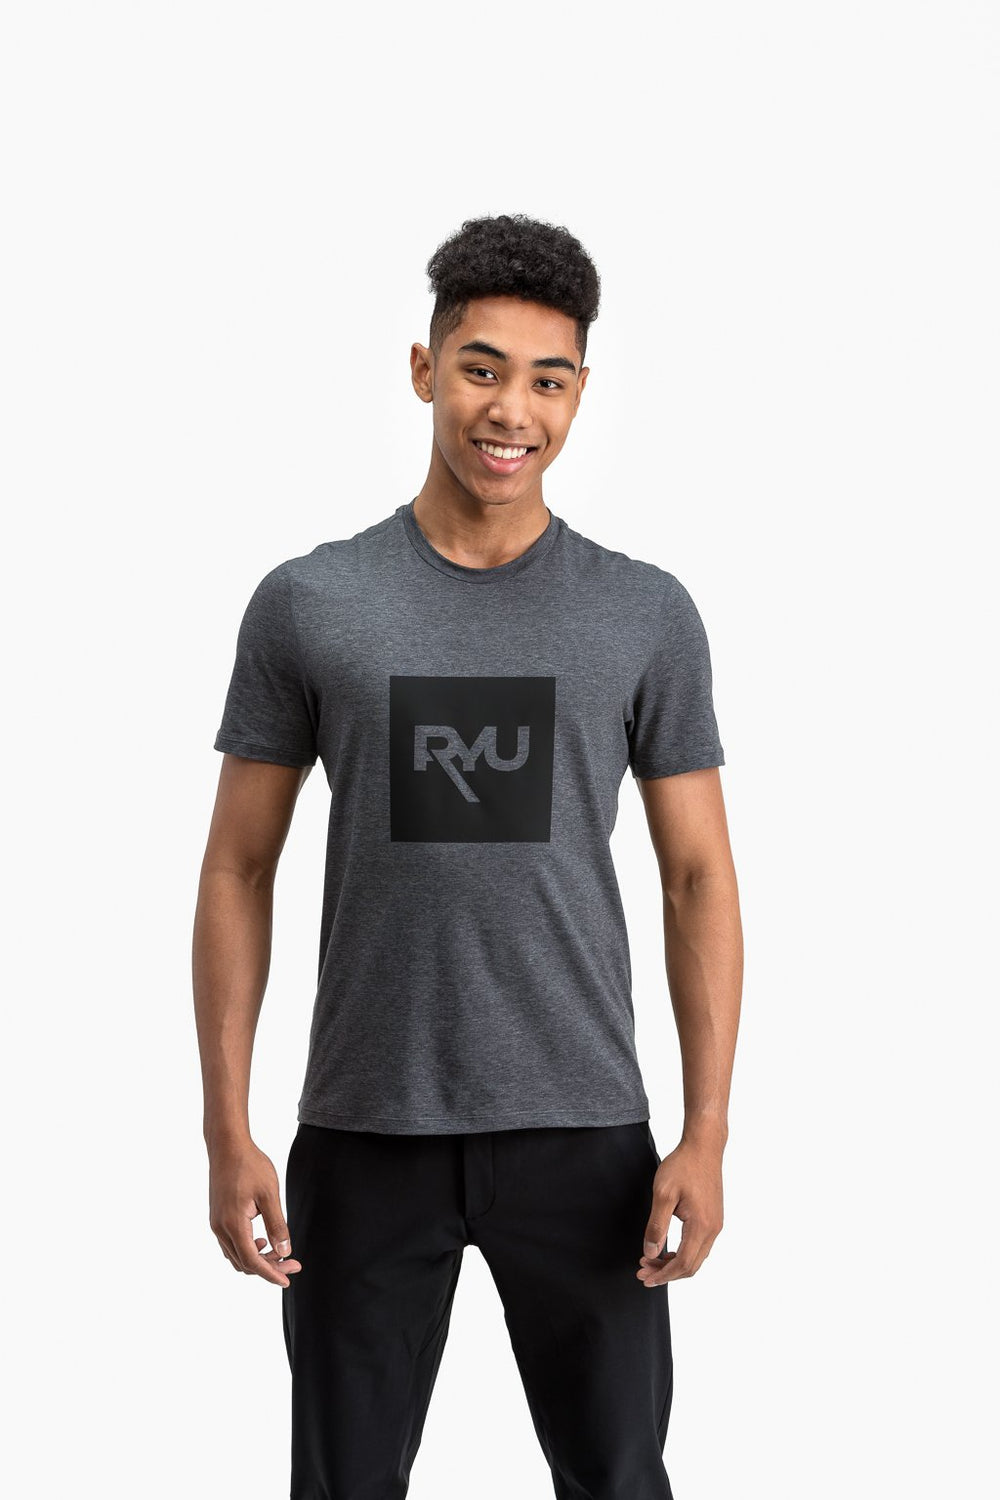 RYU Mens Standard Issue Crew - RYU Graphic in Heather Asphalt